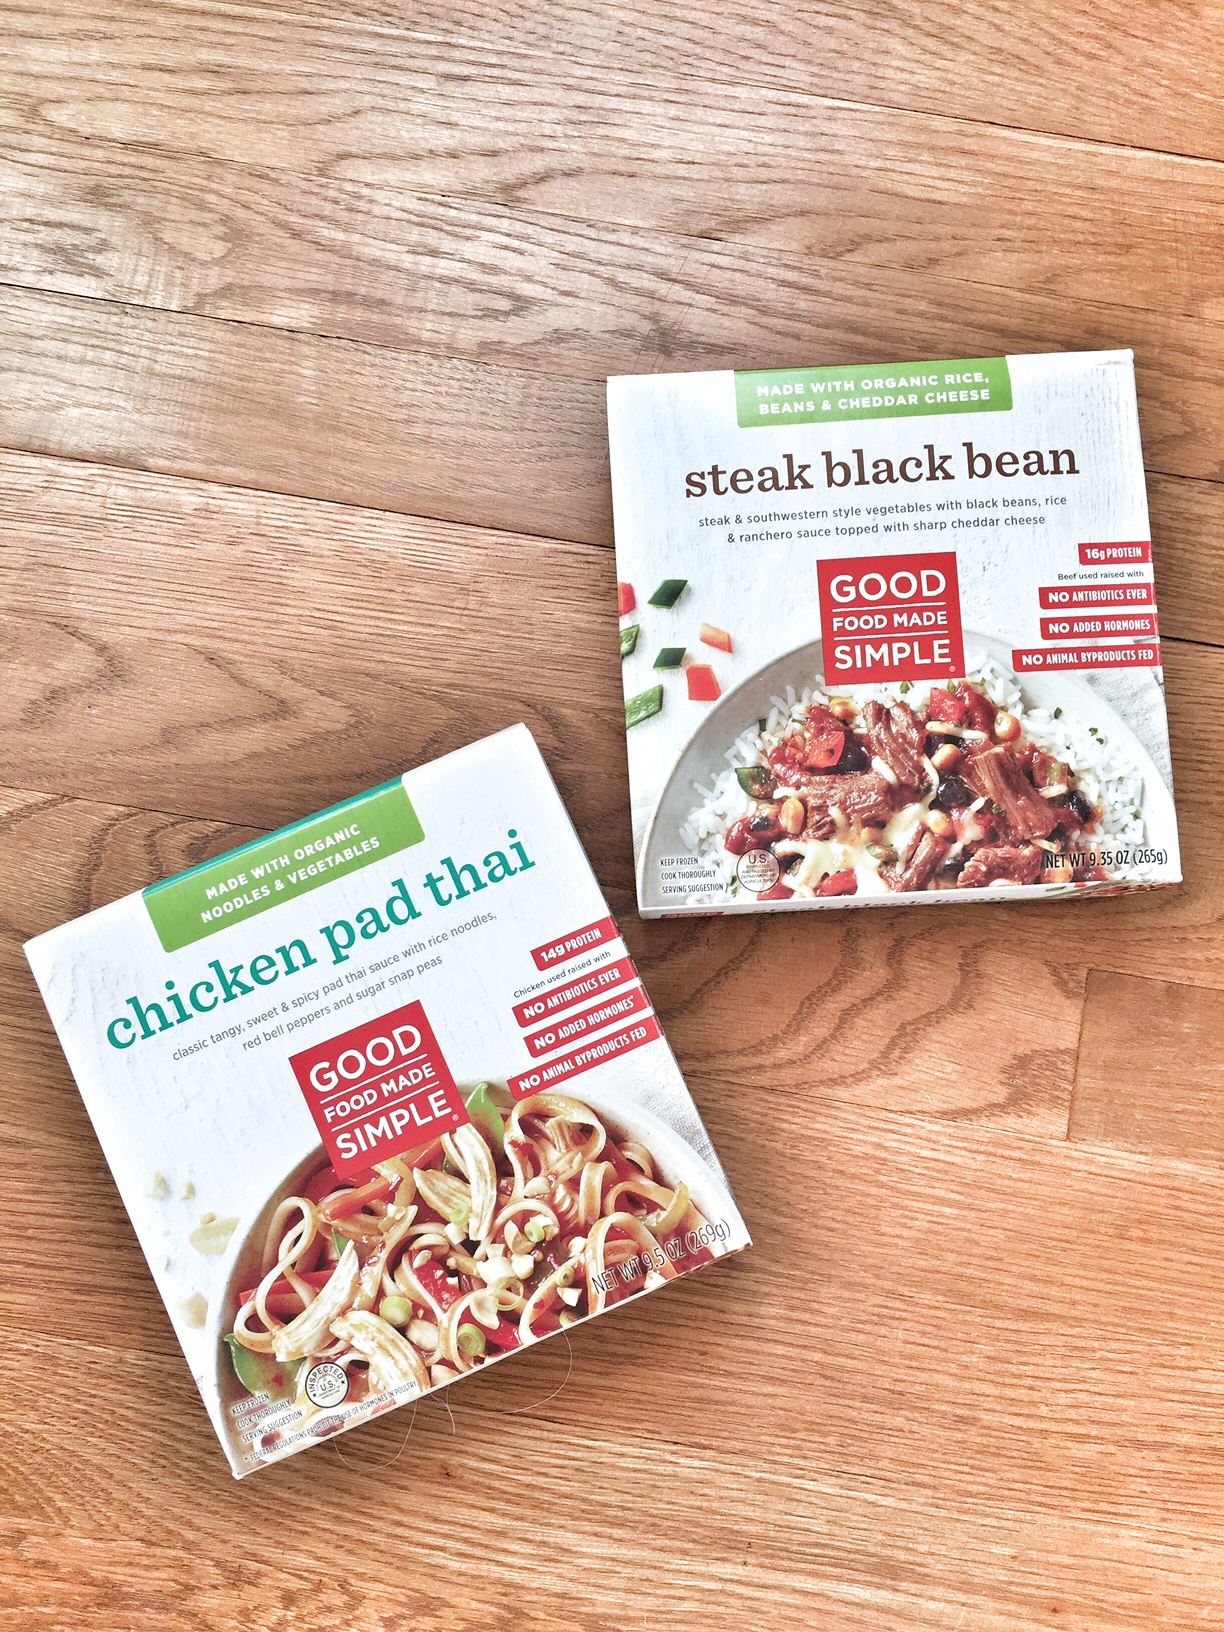 Good Food Made Simple's New Entrée Meals Available at Target